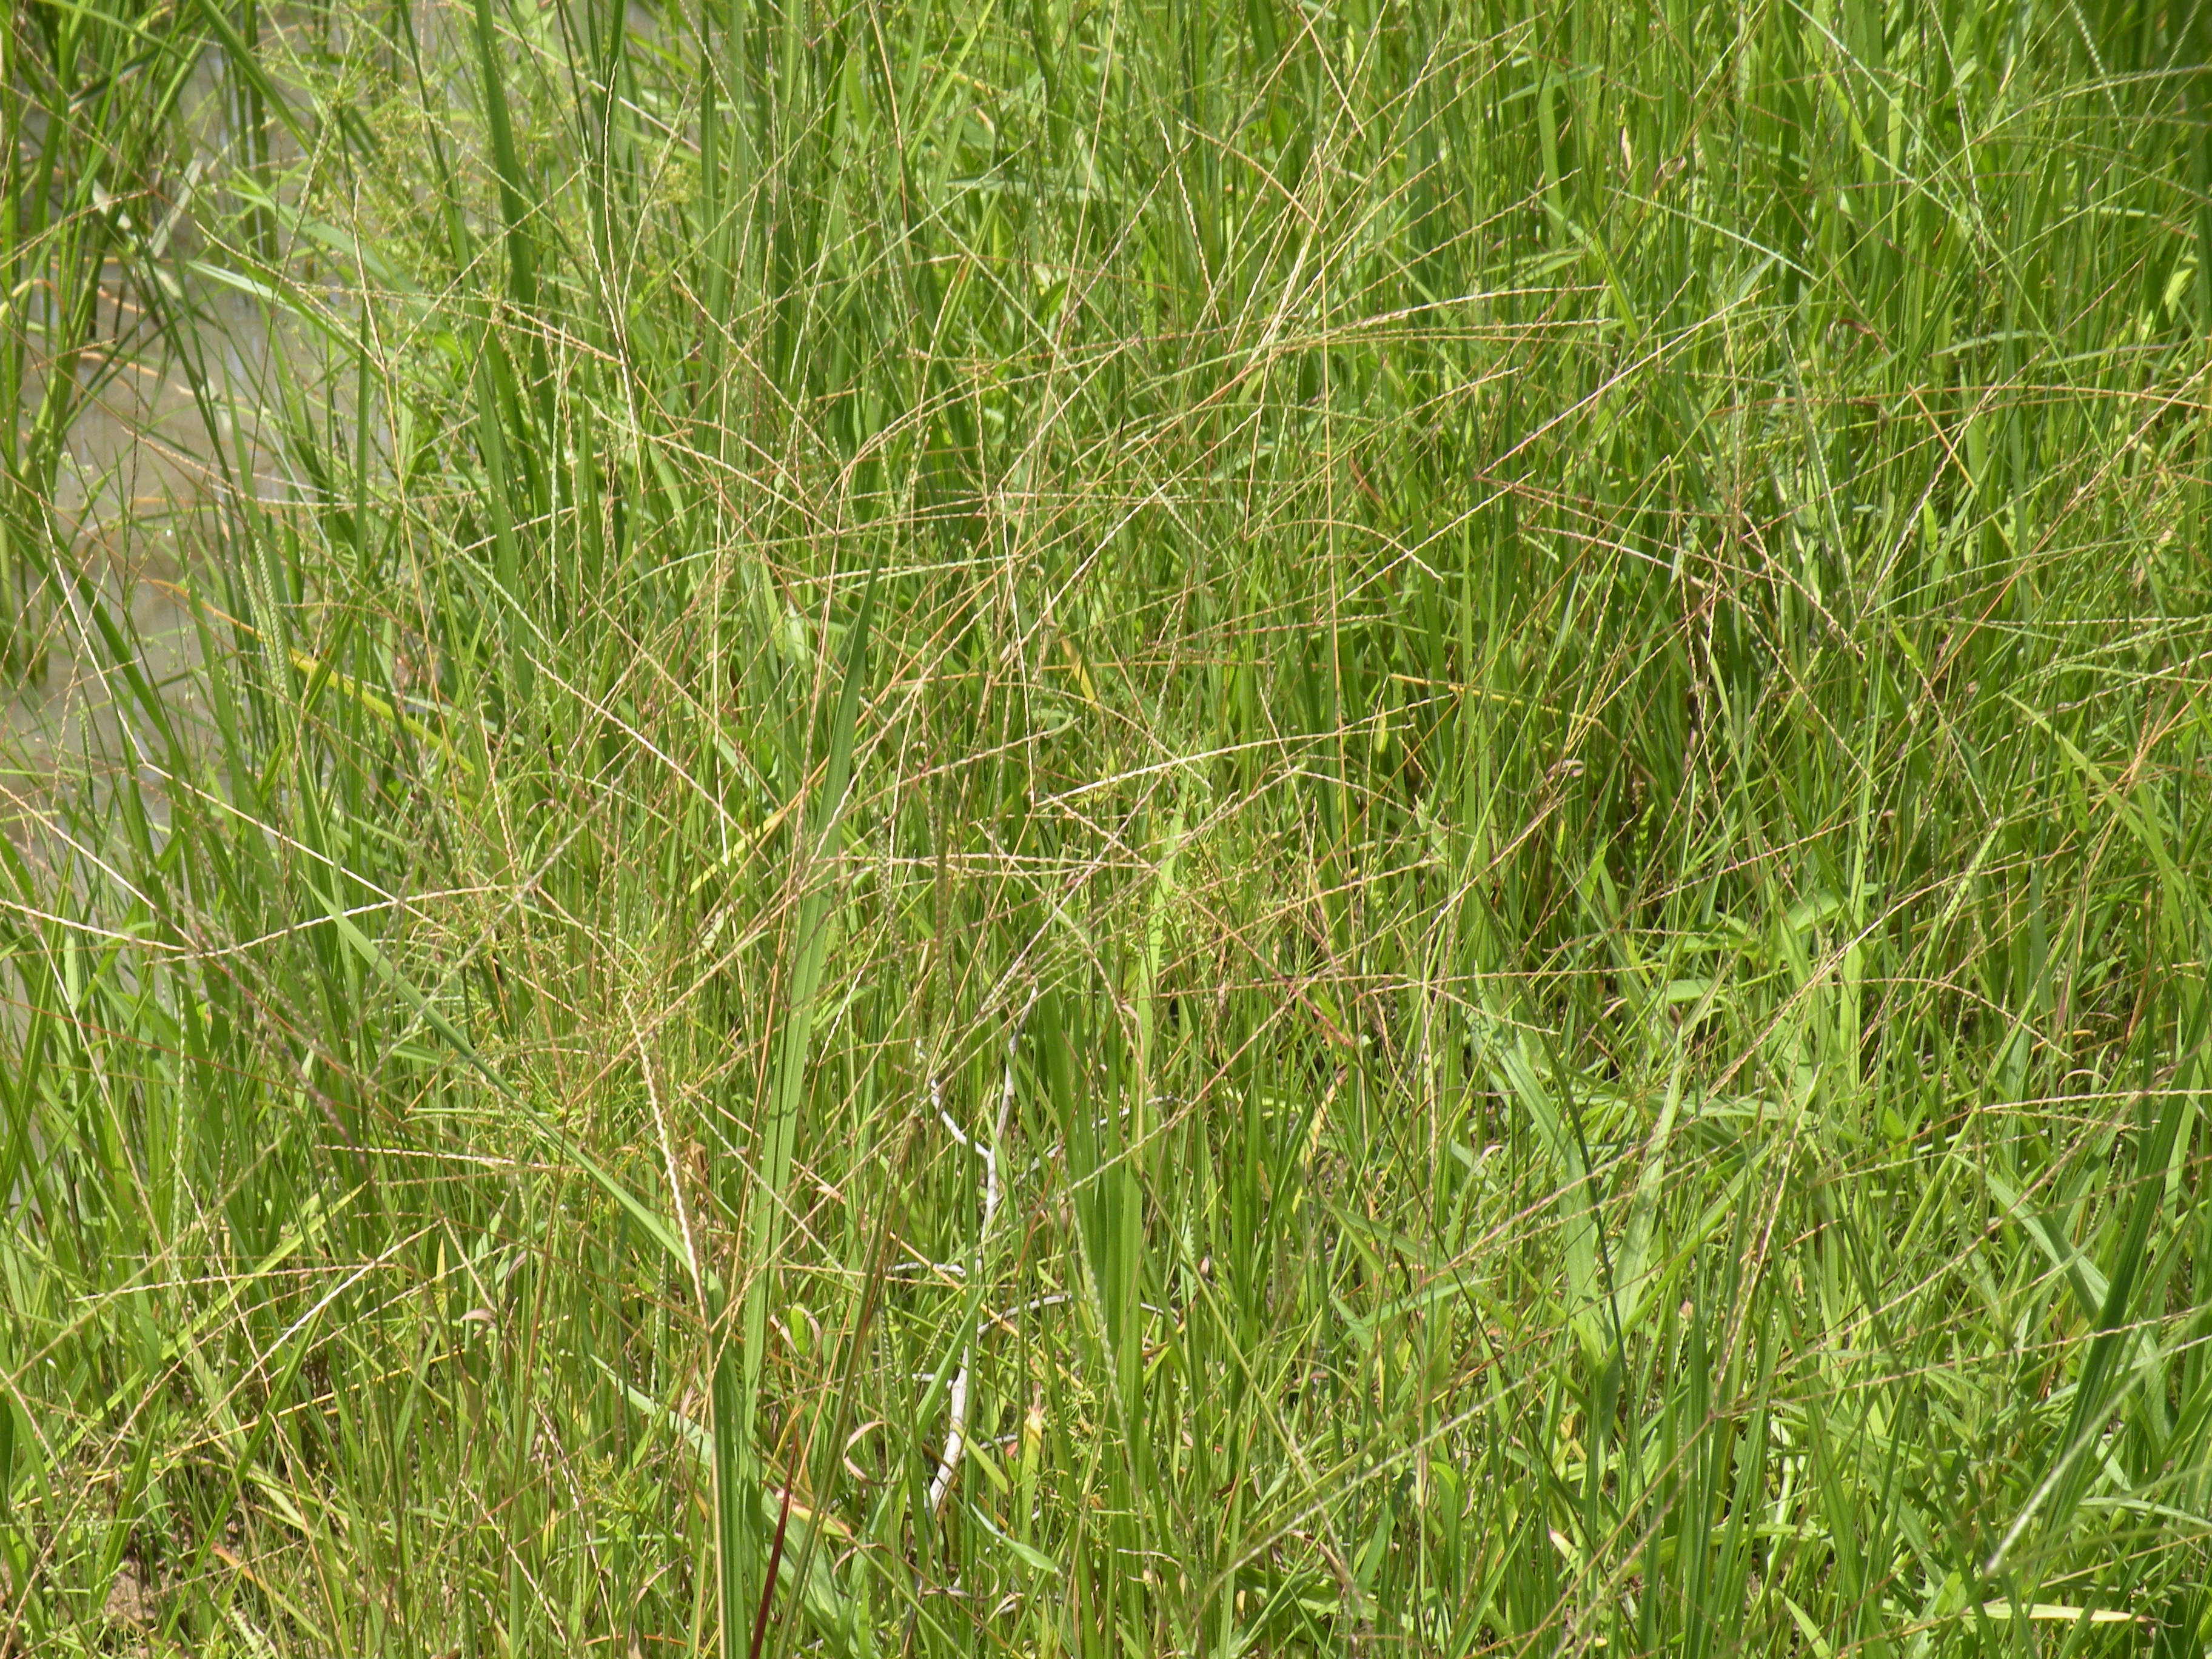 Plants with panicle in rice field